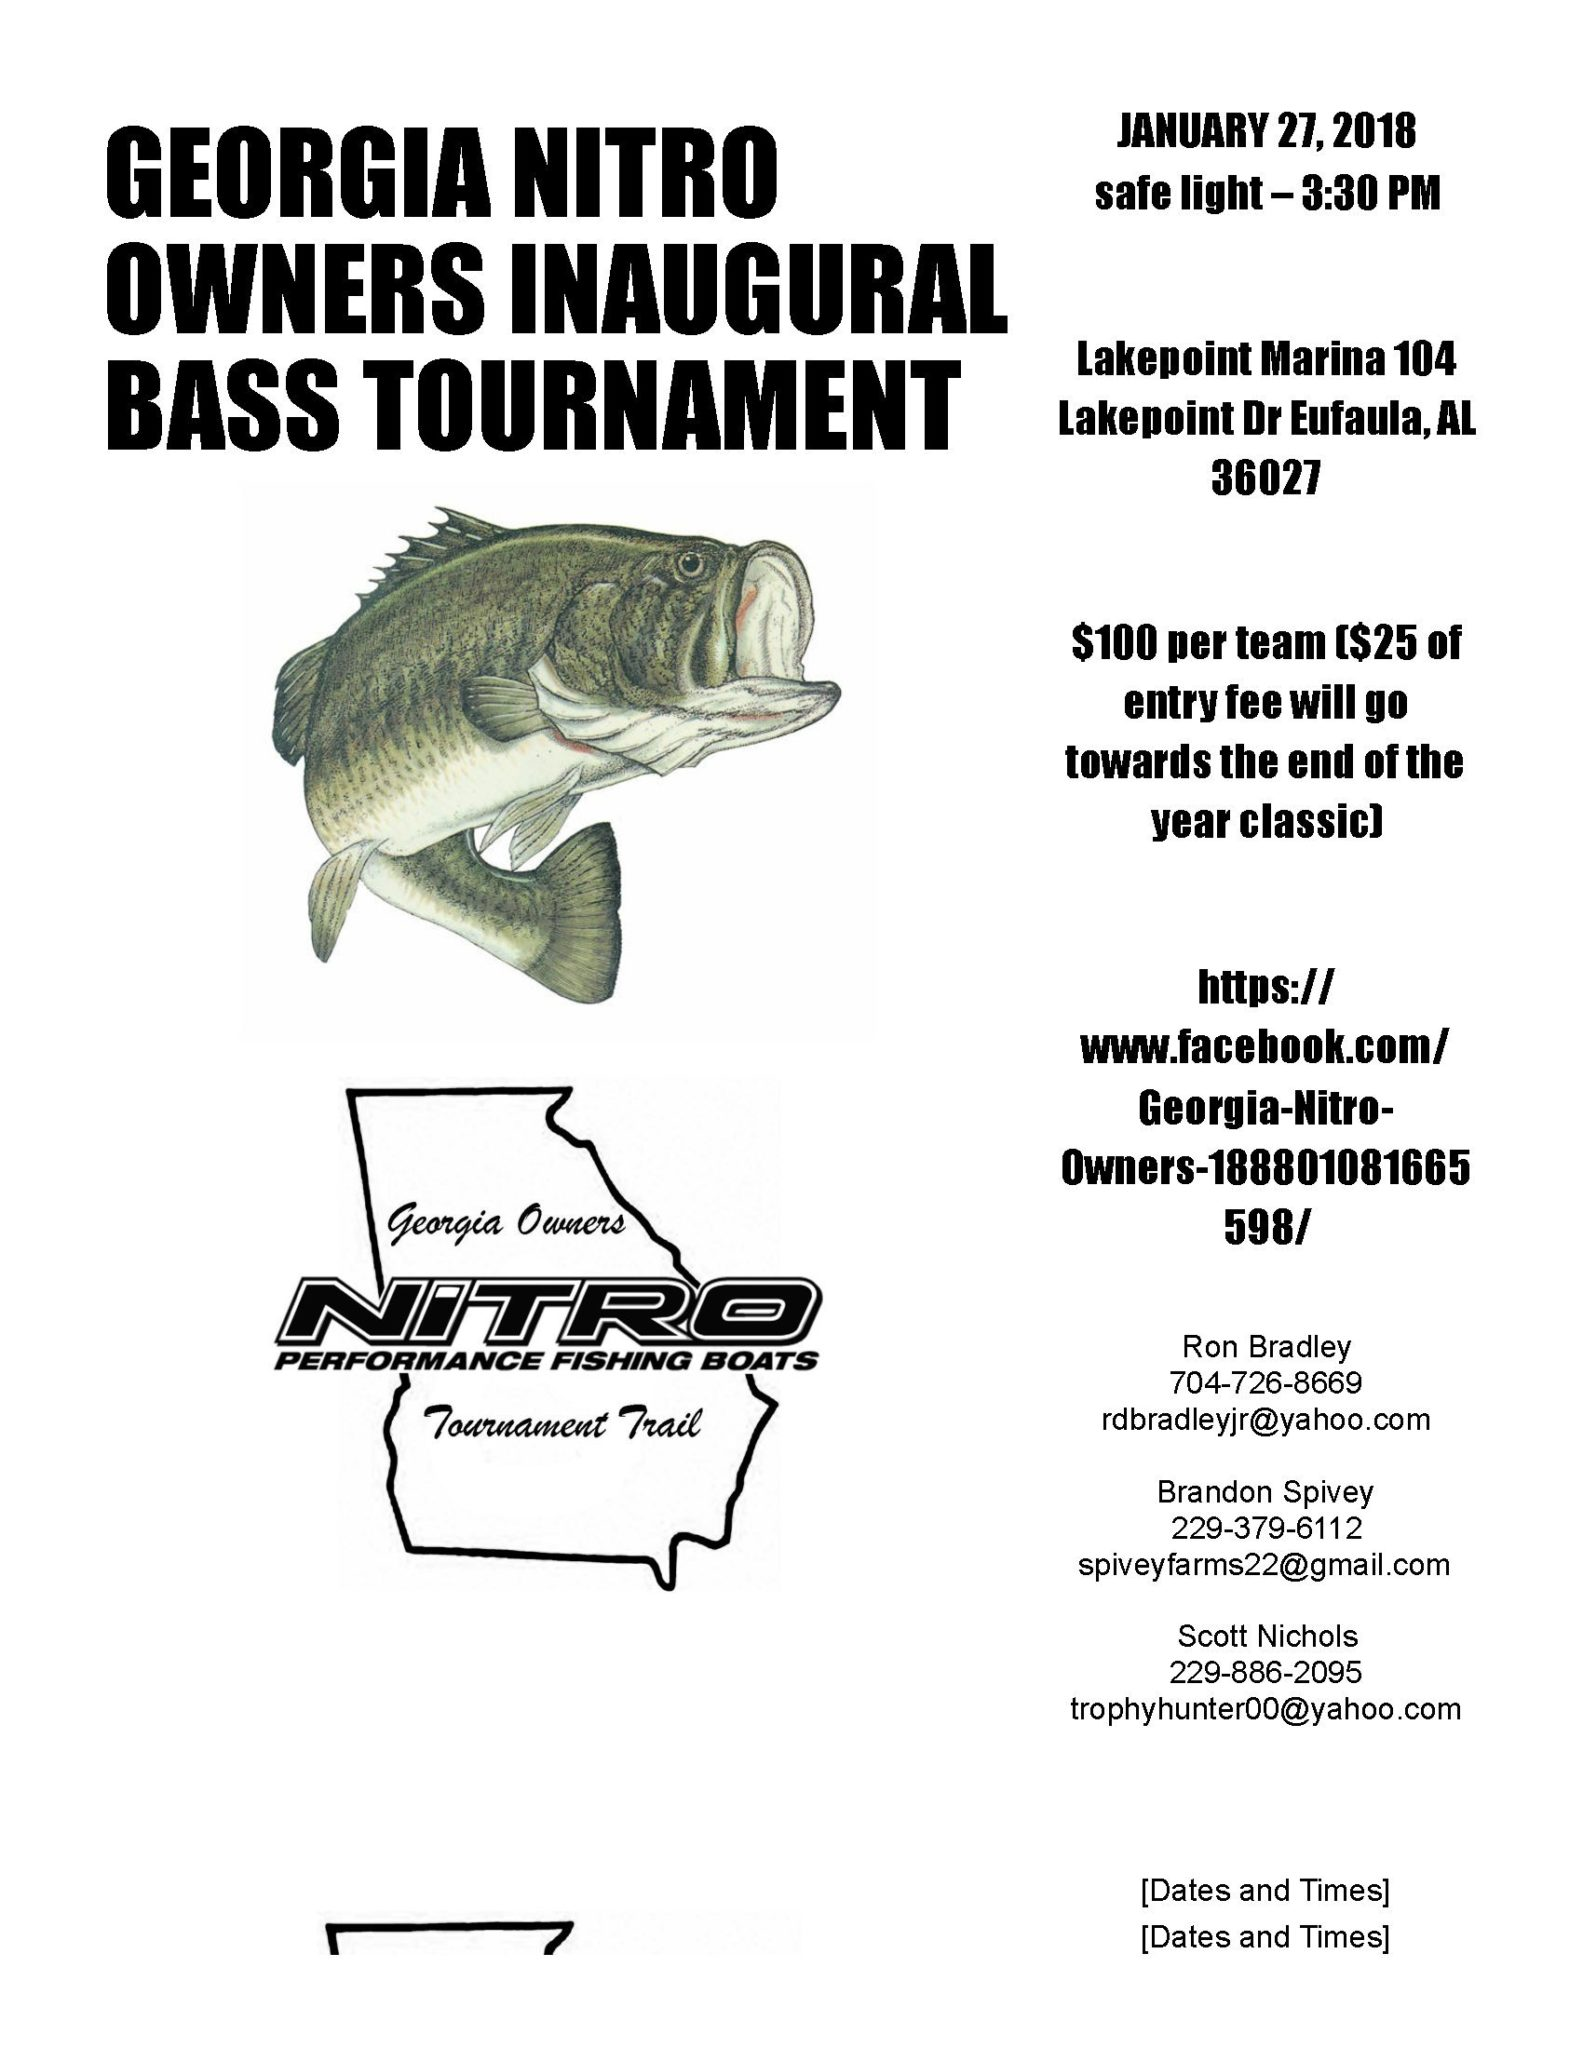 Georgia Nitro Owners Inaugural Bass Tournament Trail 2018 Schedule